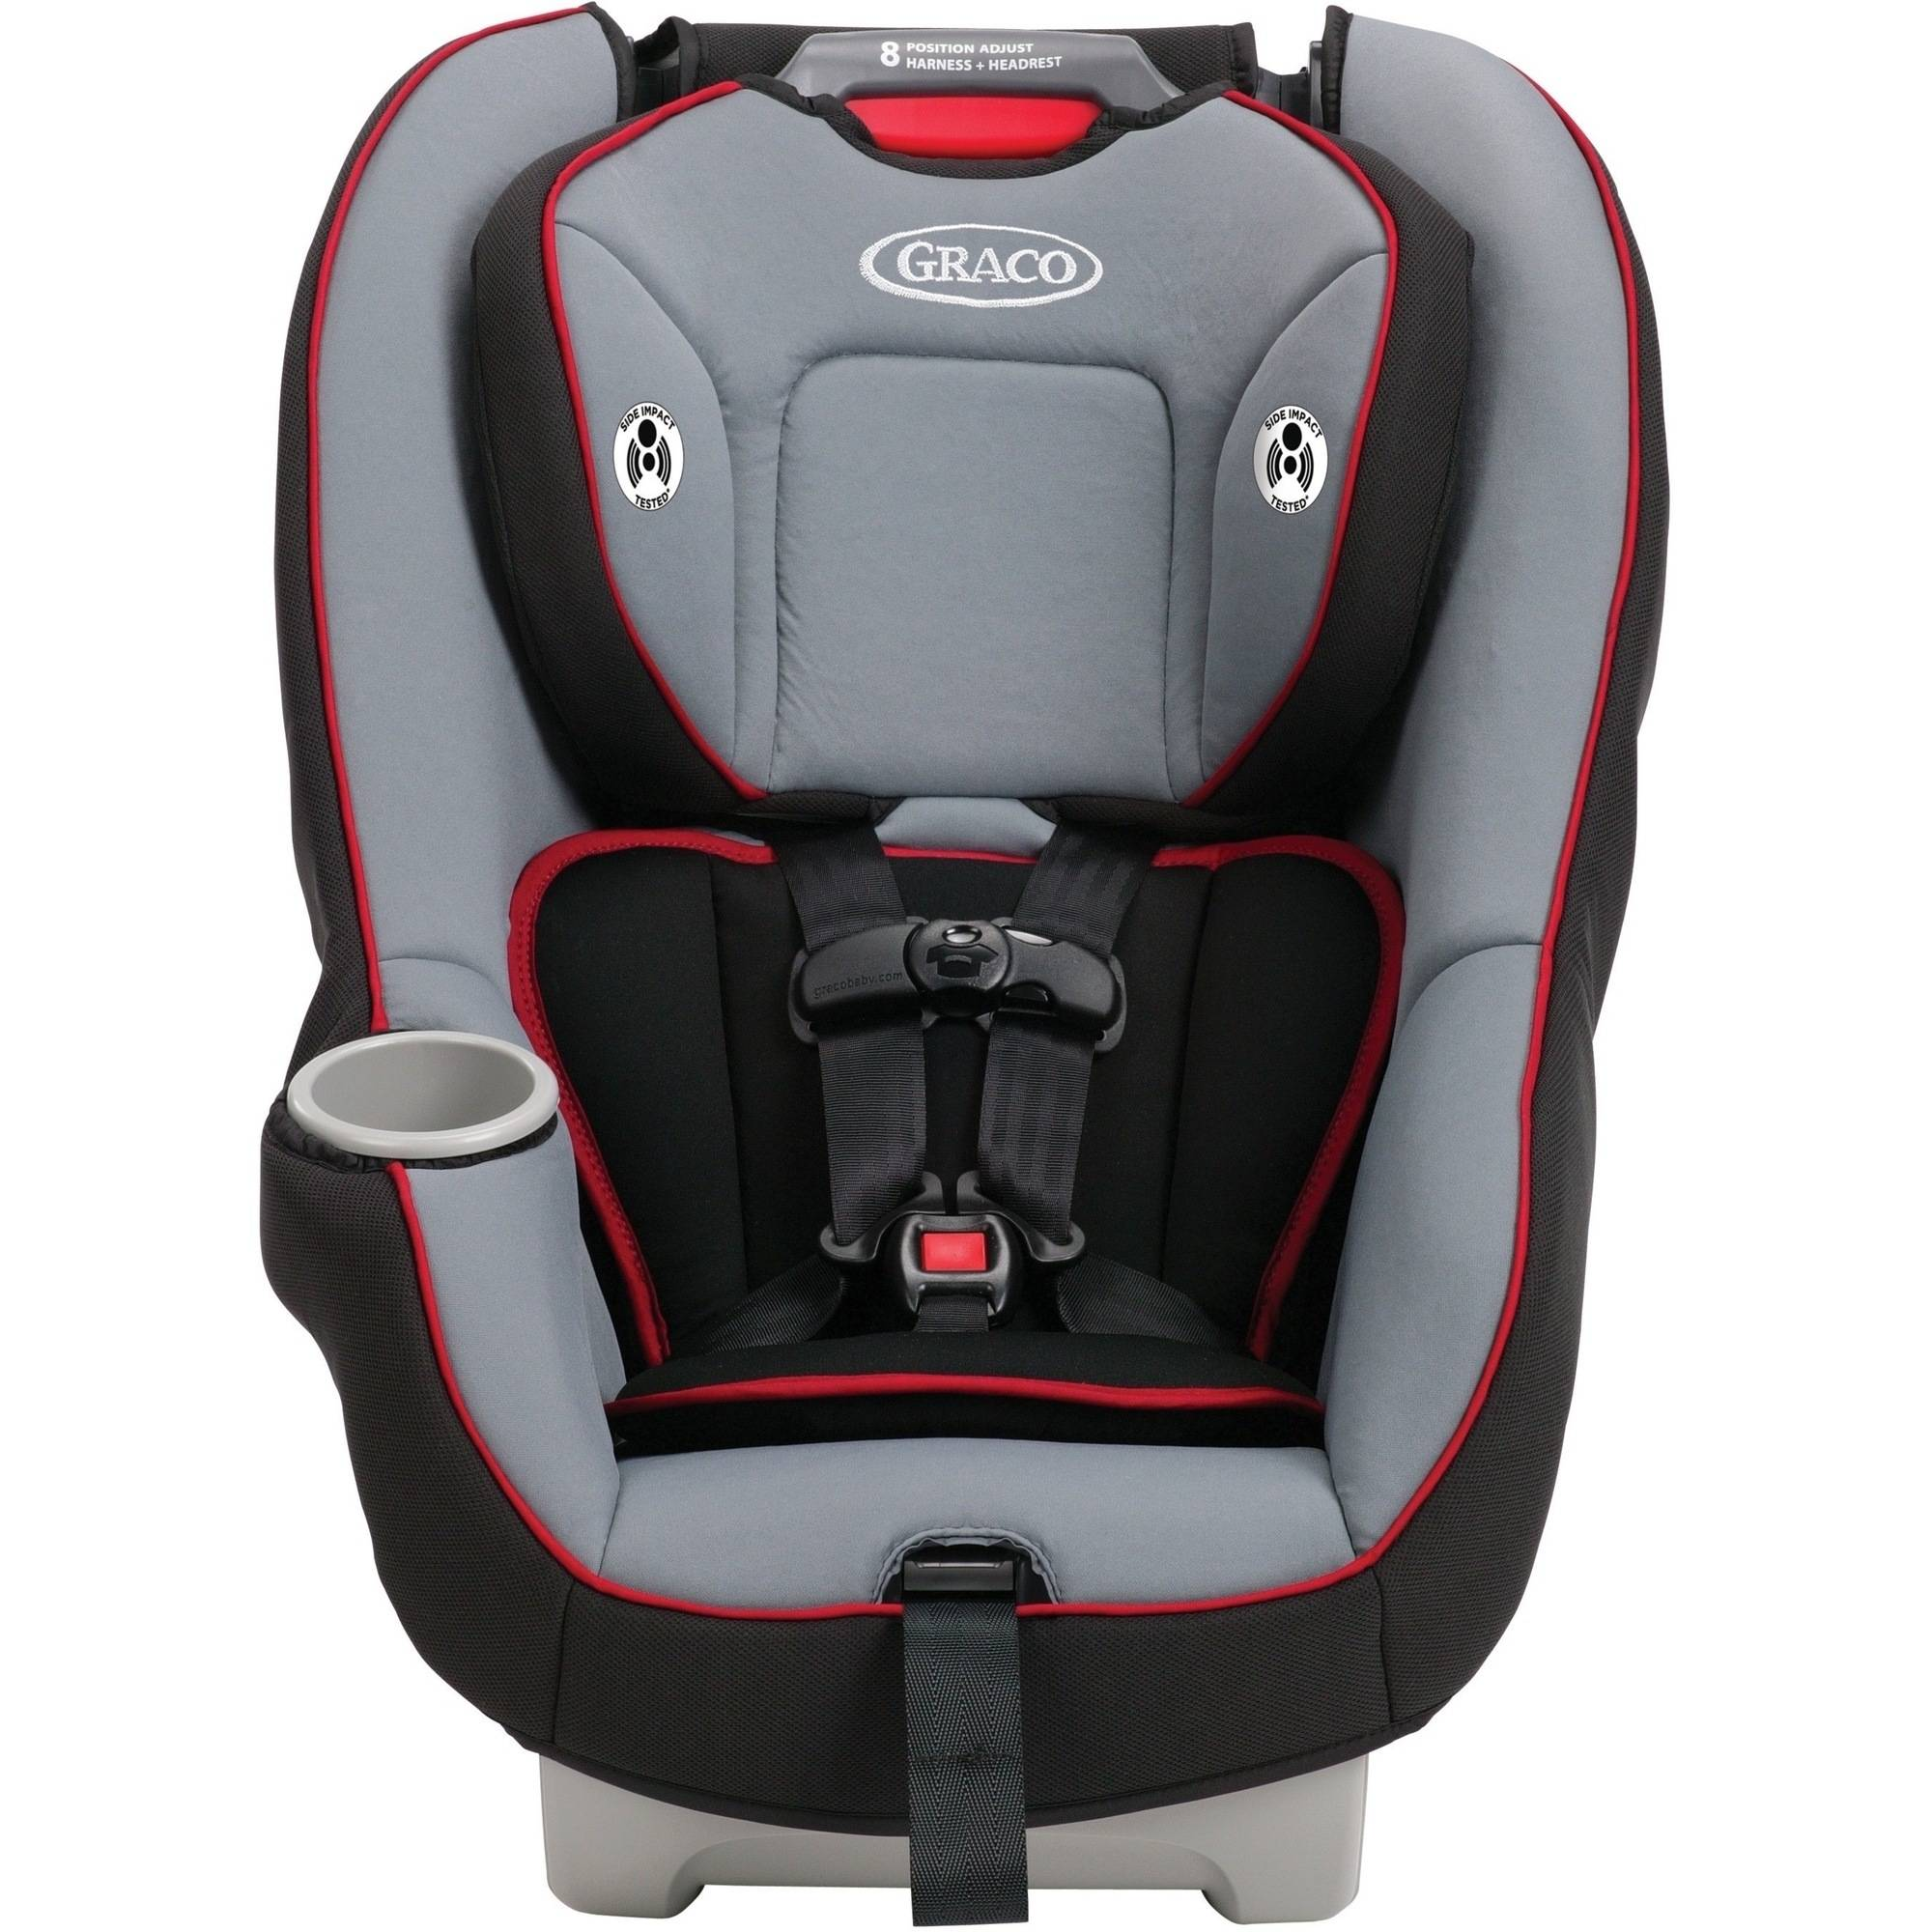 Graco 8w402ced Contender 65 Convertible Car Seat Chili Red About This Product Picture 1 Of 7 2